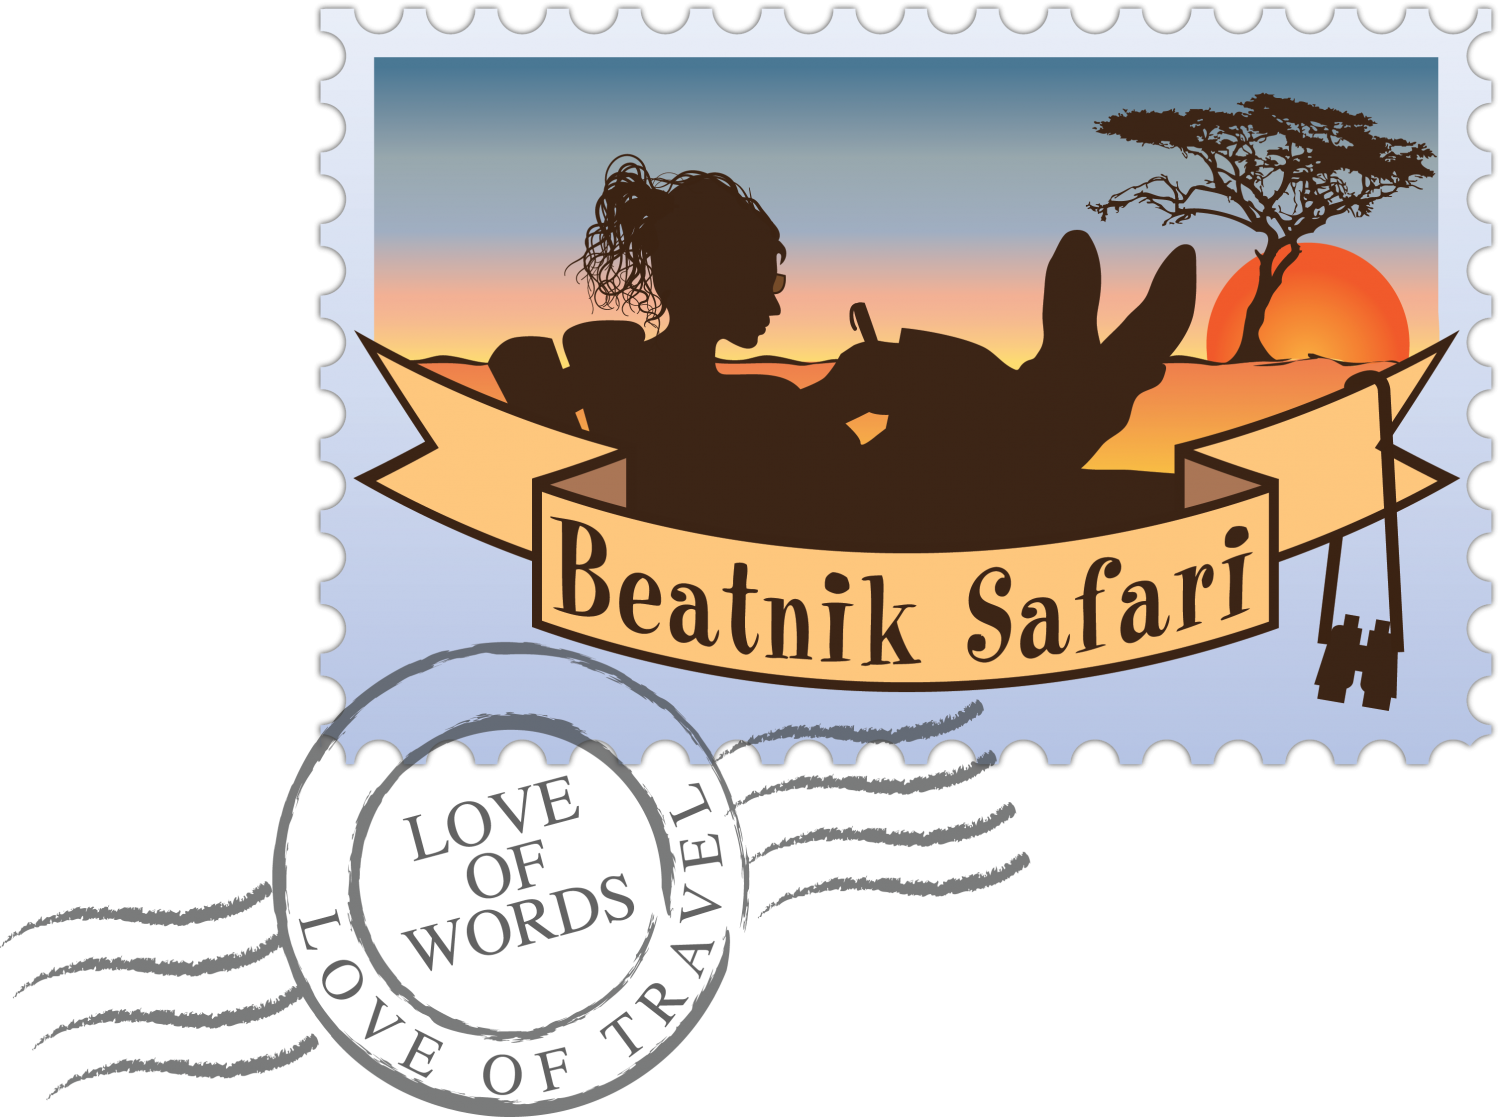 Departure clipart flew Beatnik Safari Departures arrivals and